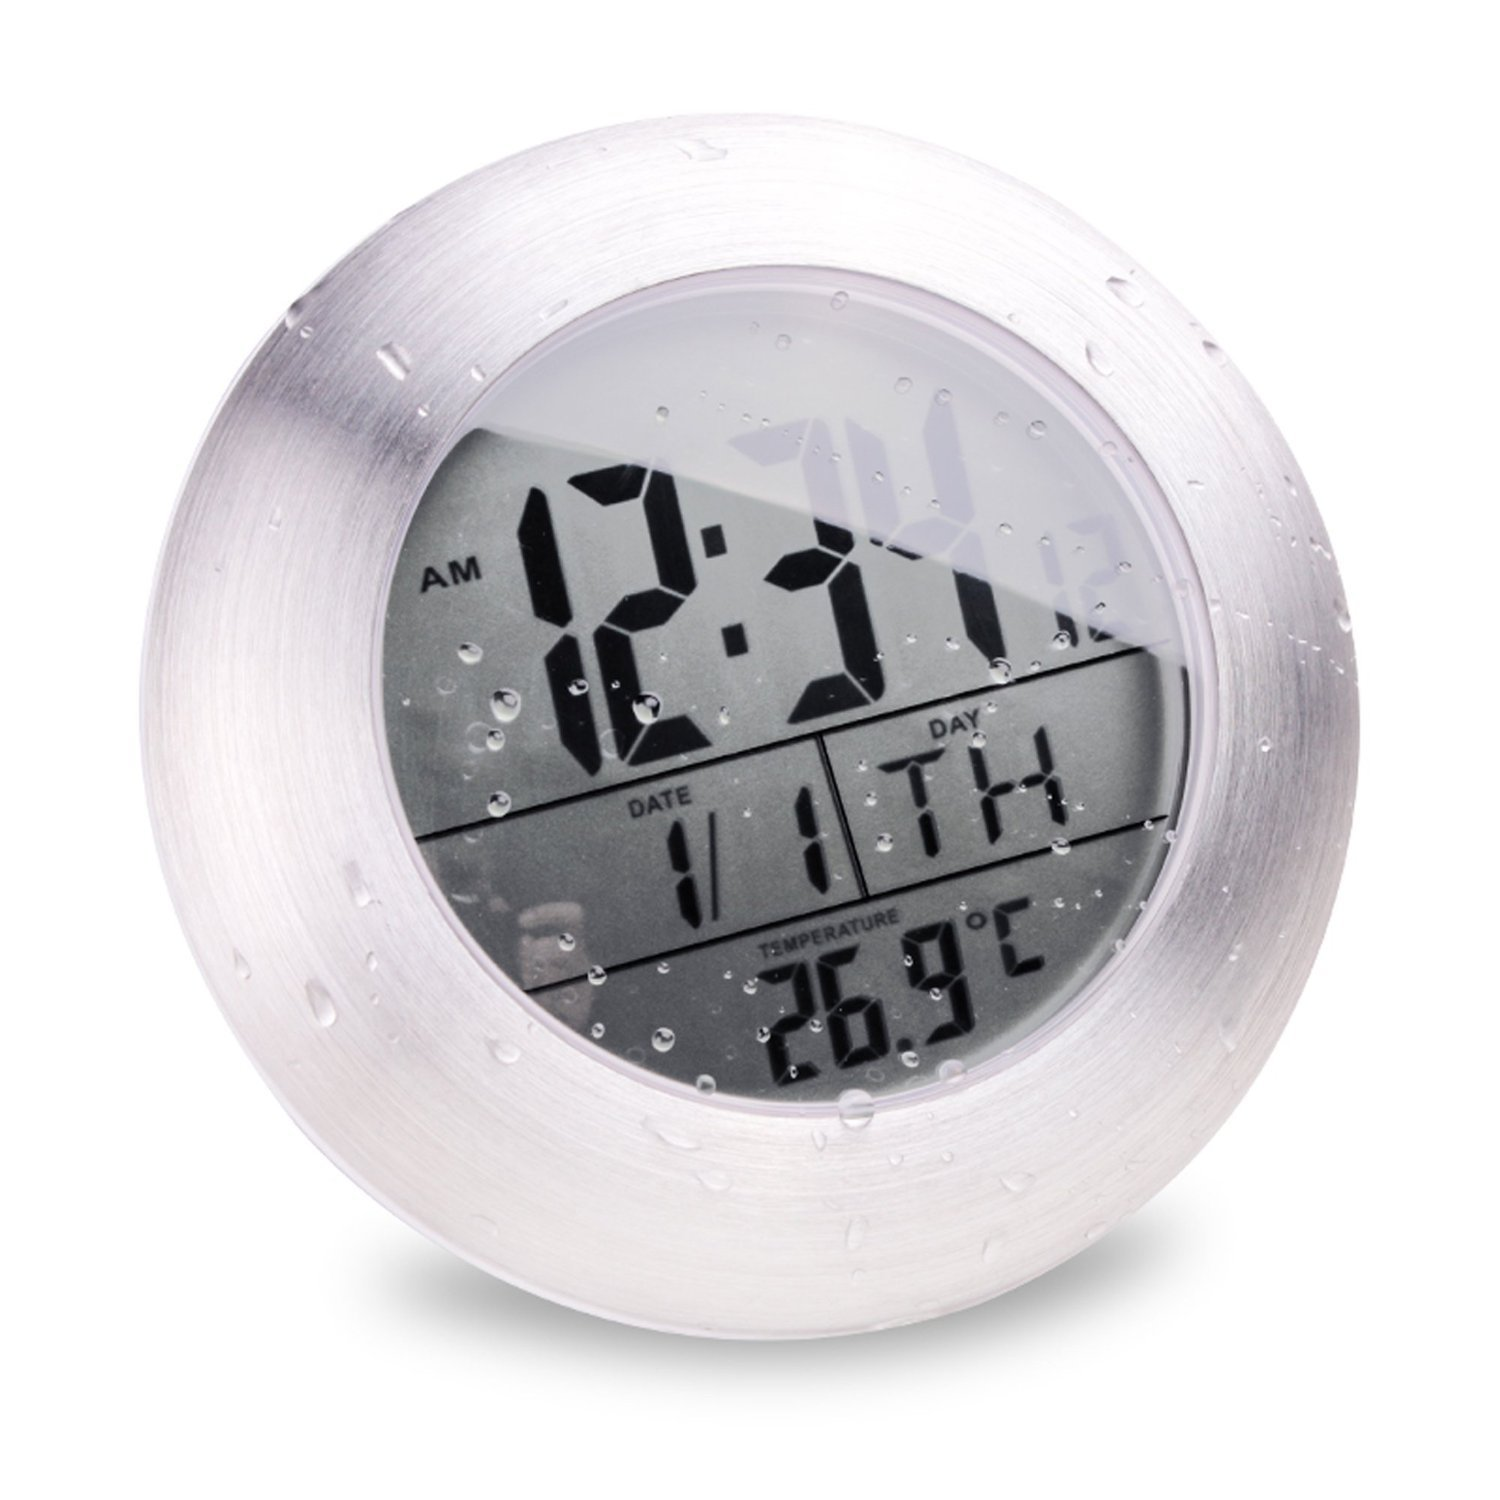 Emate Water Resistant LCD Bathroom Shower Clock Displays Time Date Week and Temperature with 4 Suction Cups Atomic Clock, Hanging Hole and Table Stand (Aluminum Finish)